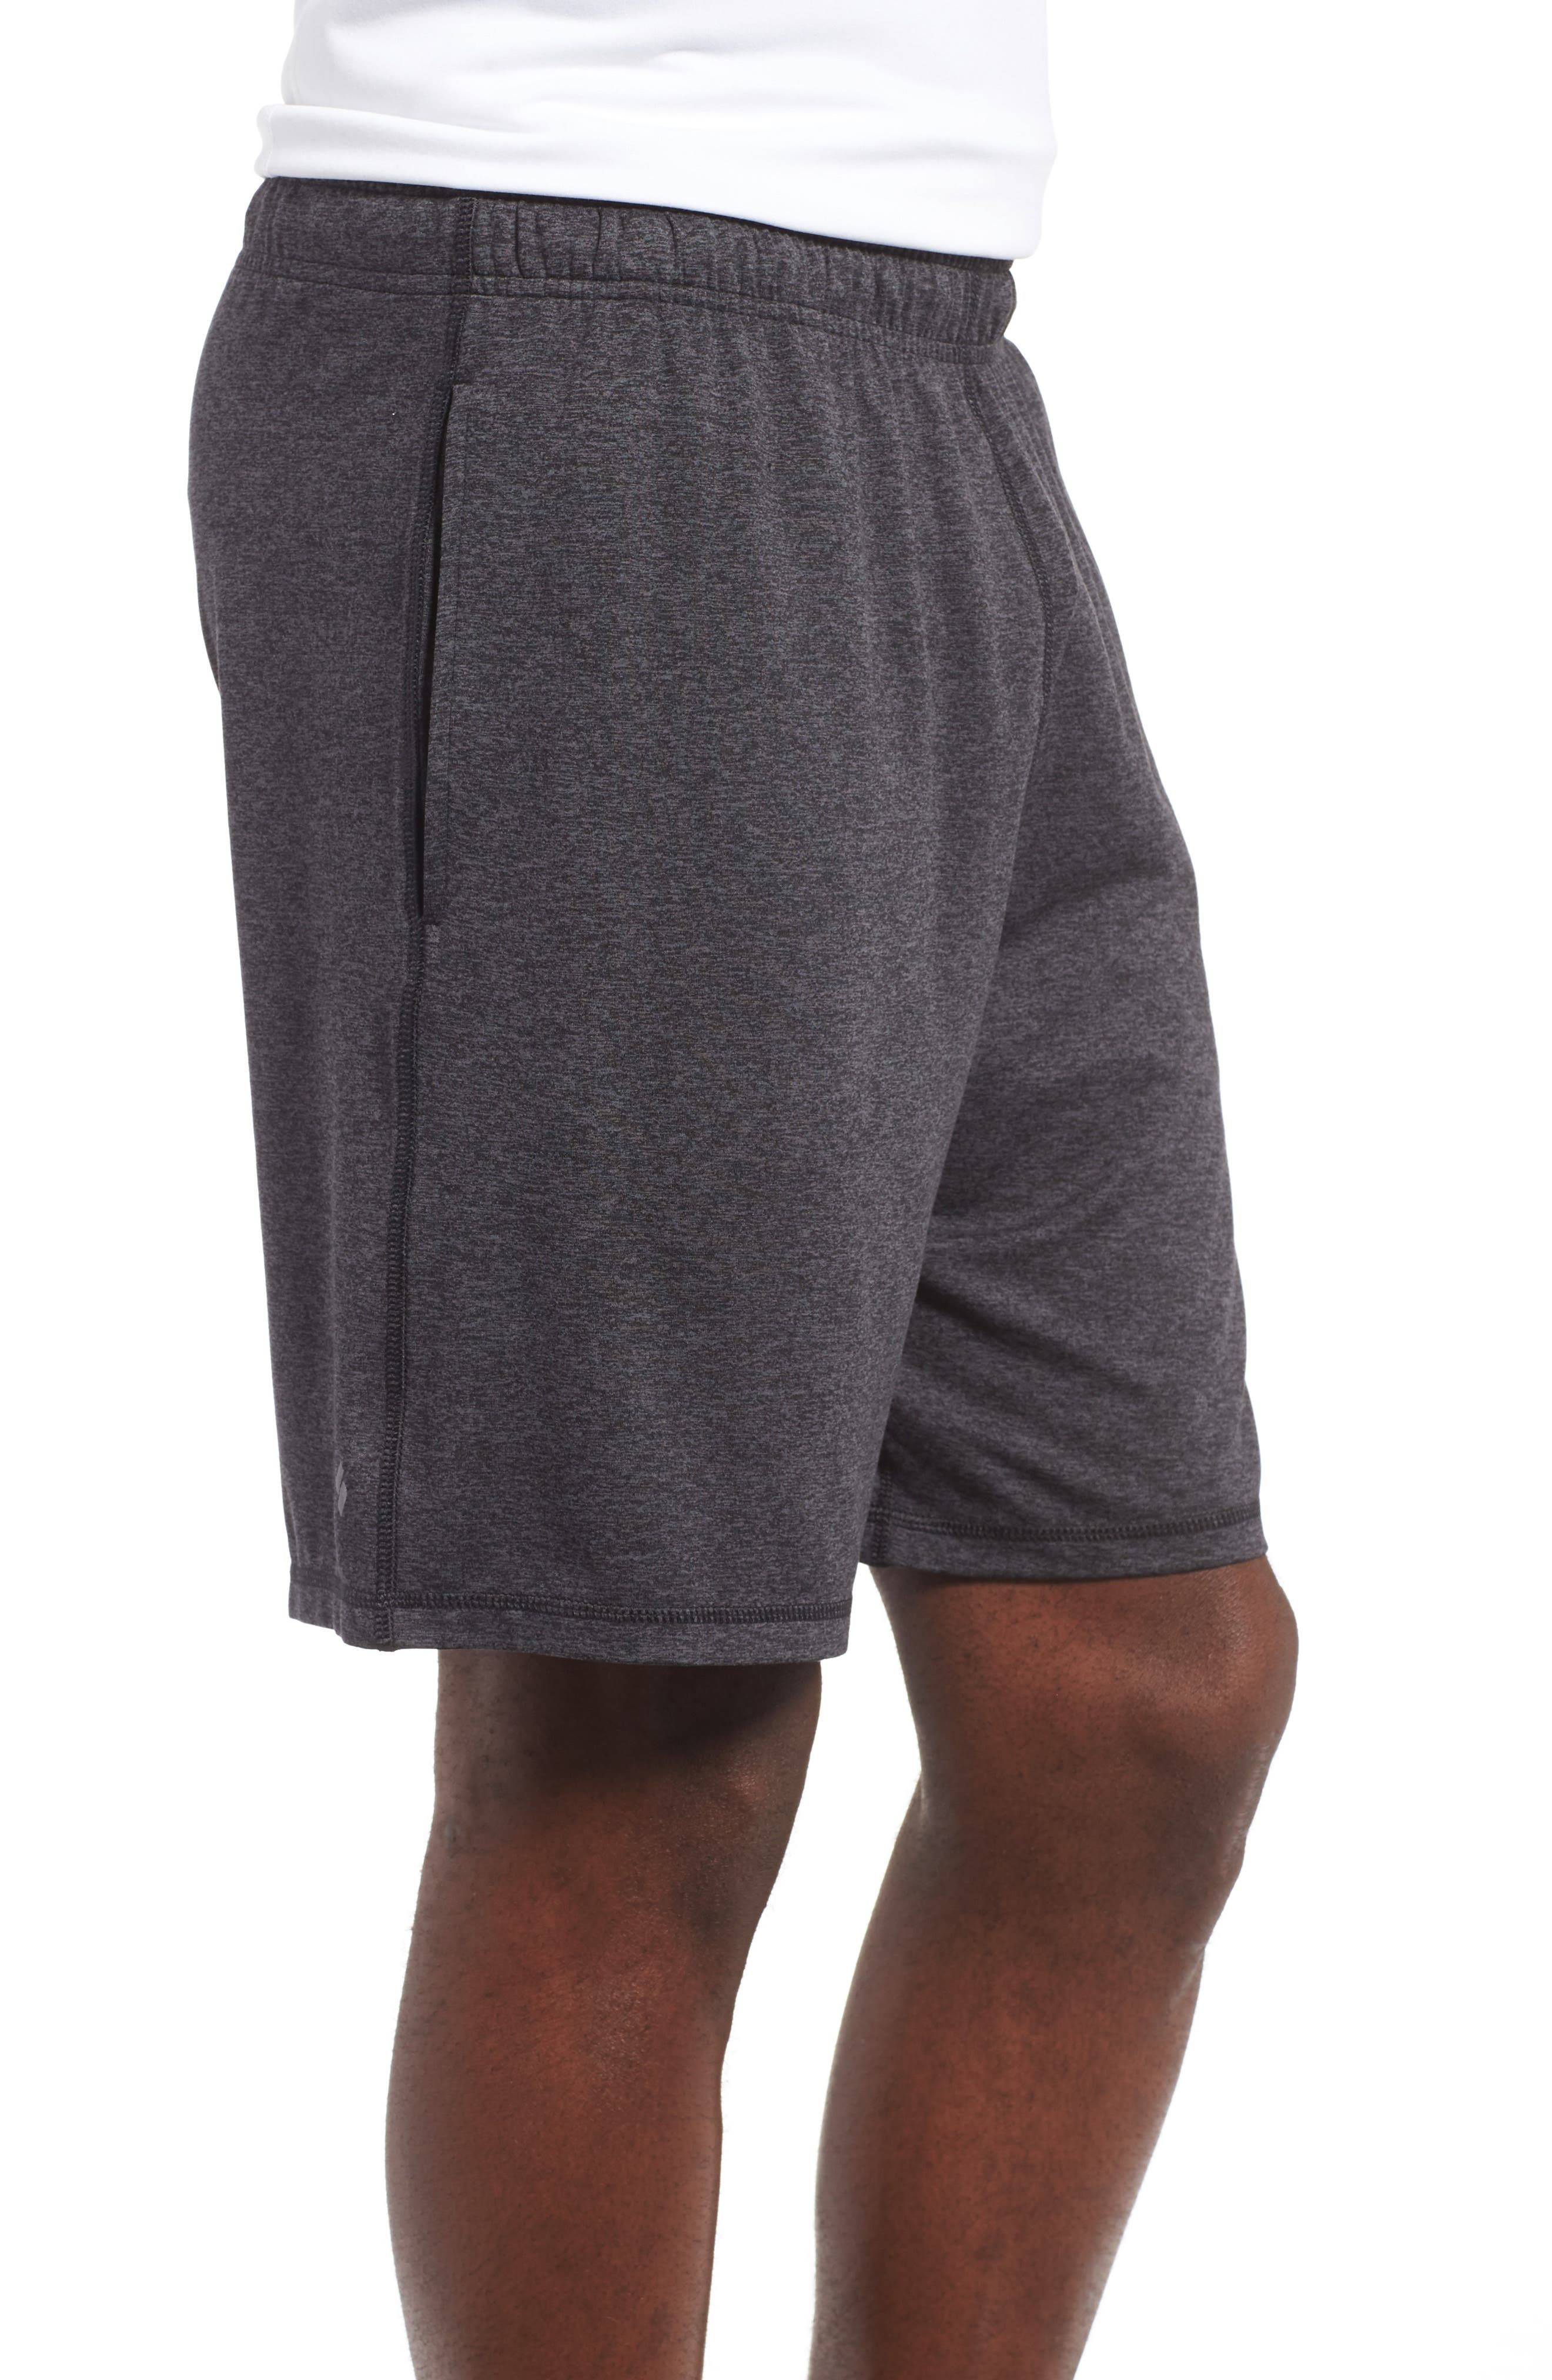 'Go To' Moisture Wicking Stretch Shorts,                             Alternate thumbnail 3, color,                             HEATHER CHARCOAL/ BLACK